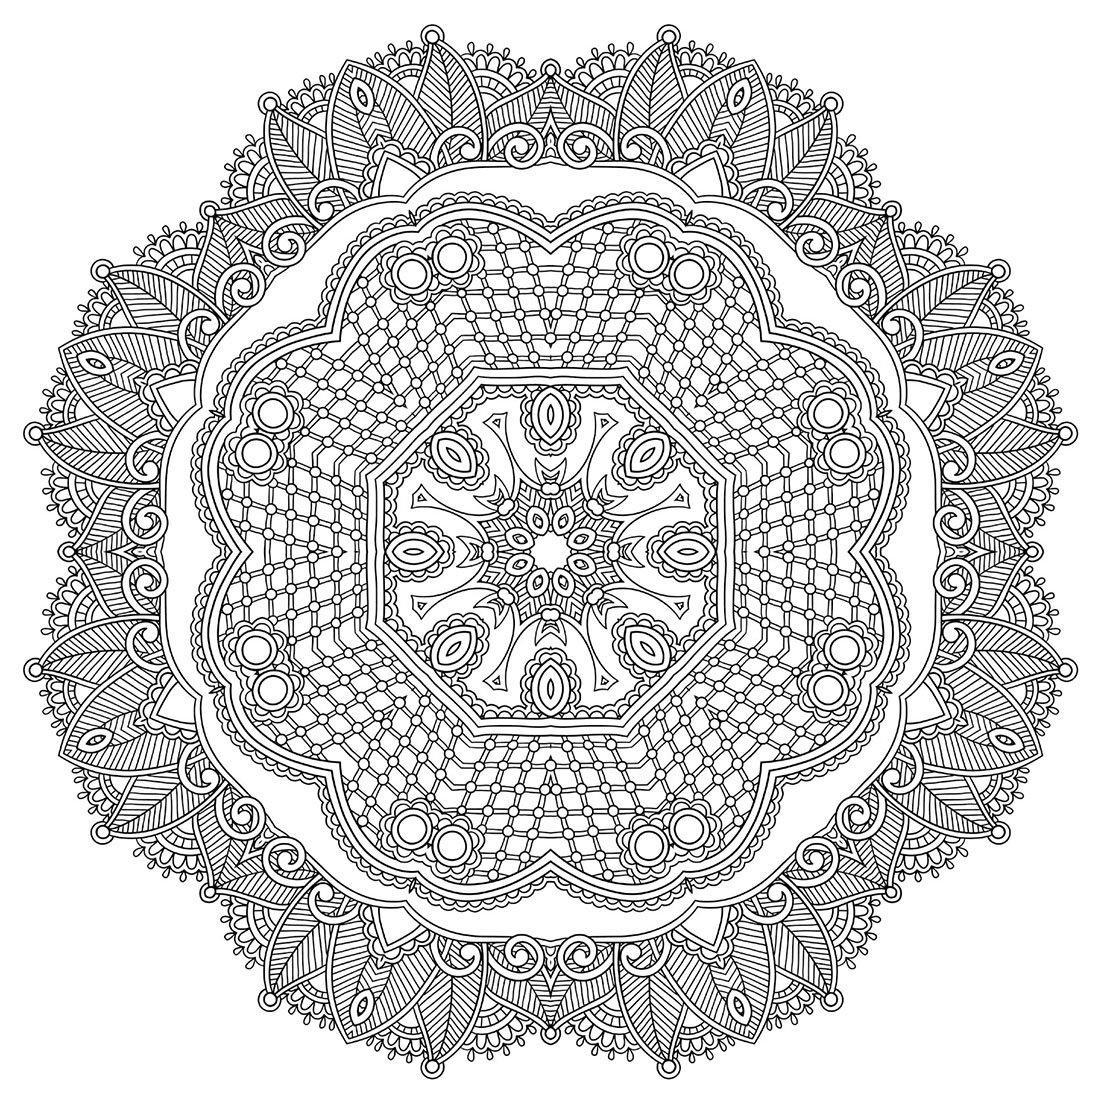 The One And Only Mandala Colouring Book Coloring 9781907912801 Amazon Books